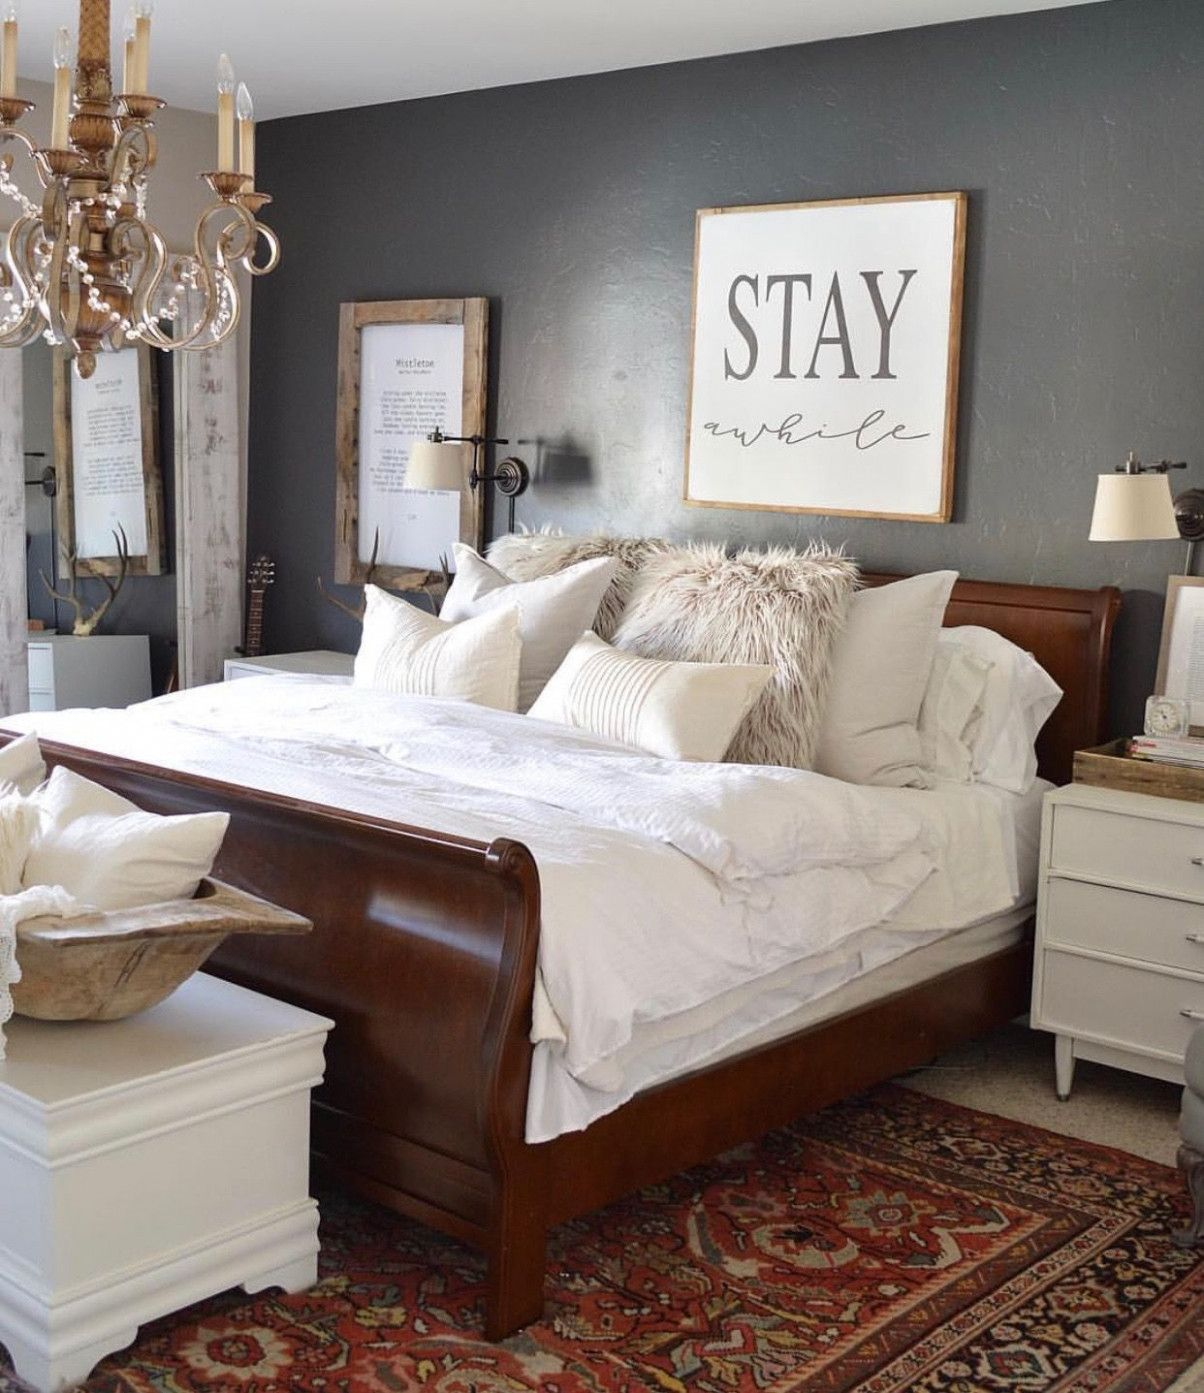 13 Bedroom Ideas Dark In 2020 Brown Furniture Bedroom Master Bedroom Furniture Bedding Master Bedroom